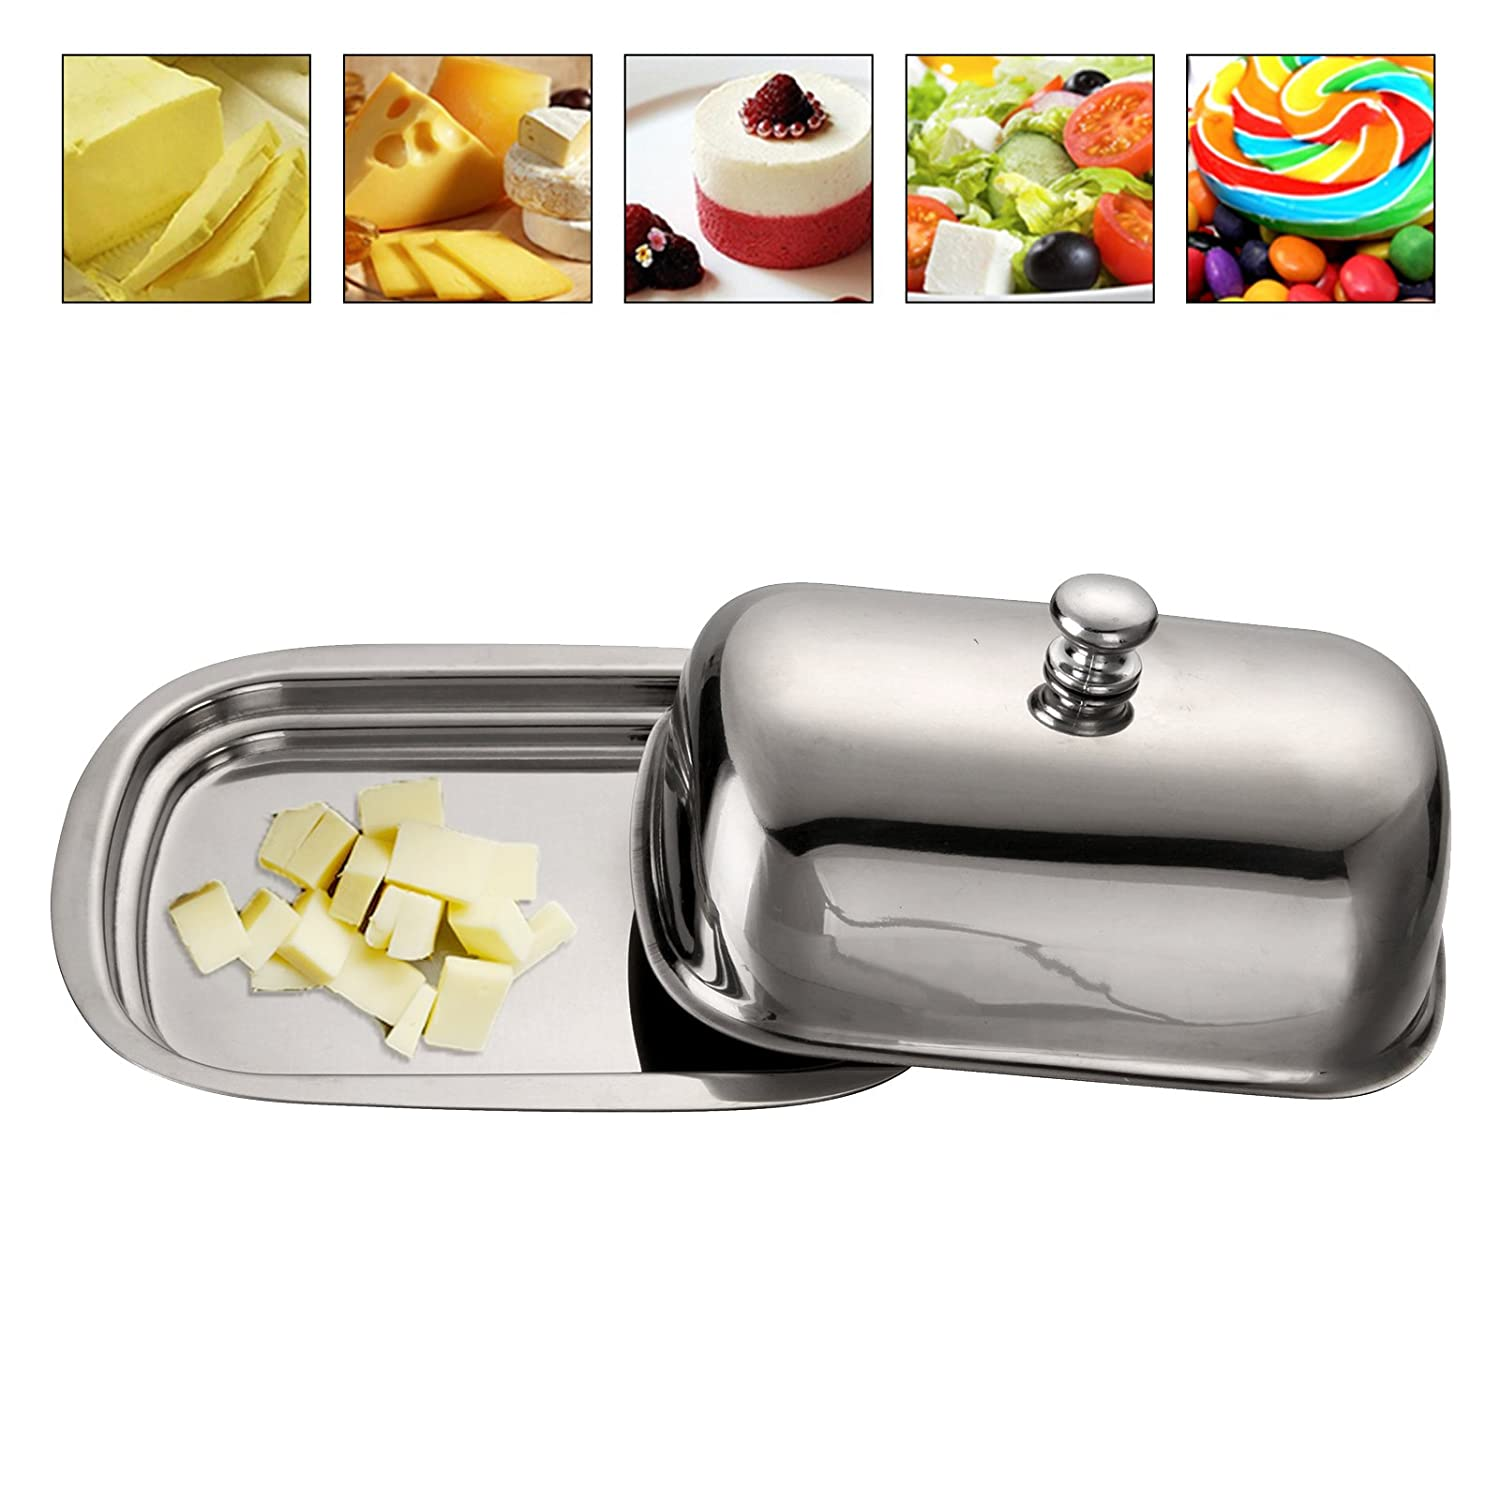 Huayao Stainless Steel Butter Dish Table Serving Tray Storage